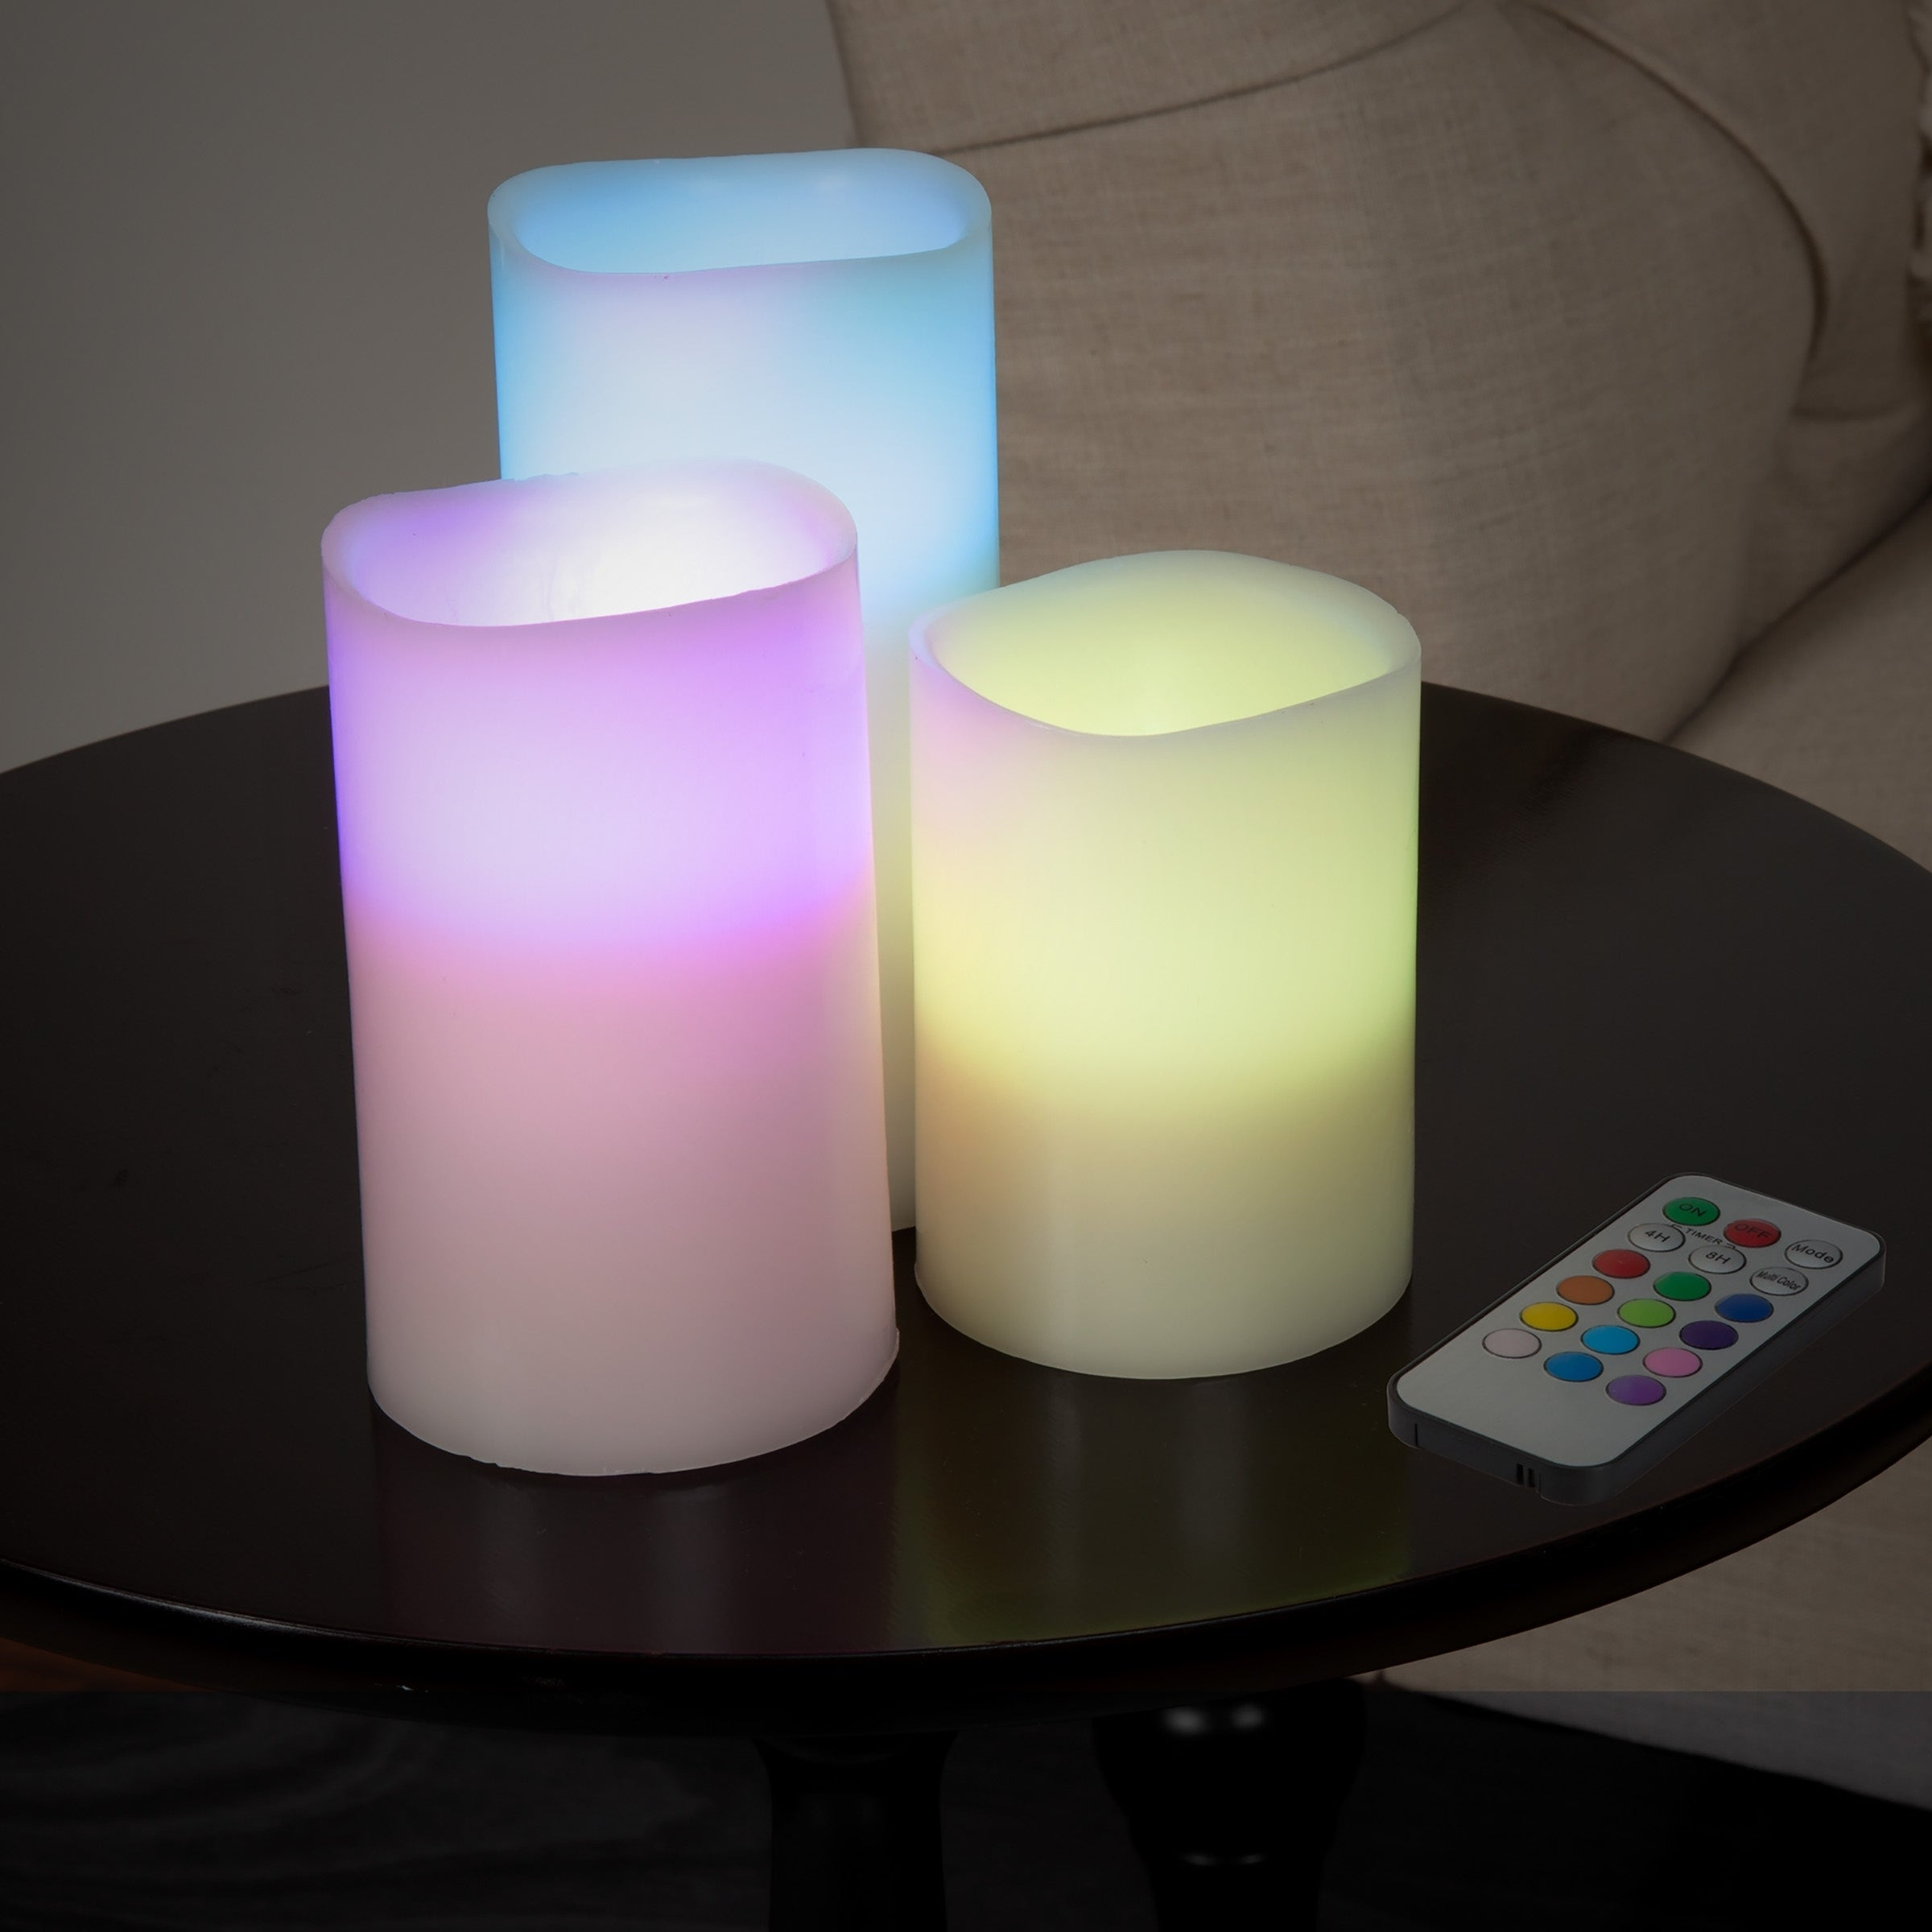 3-piece Flameless LED Candle Set with Remote